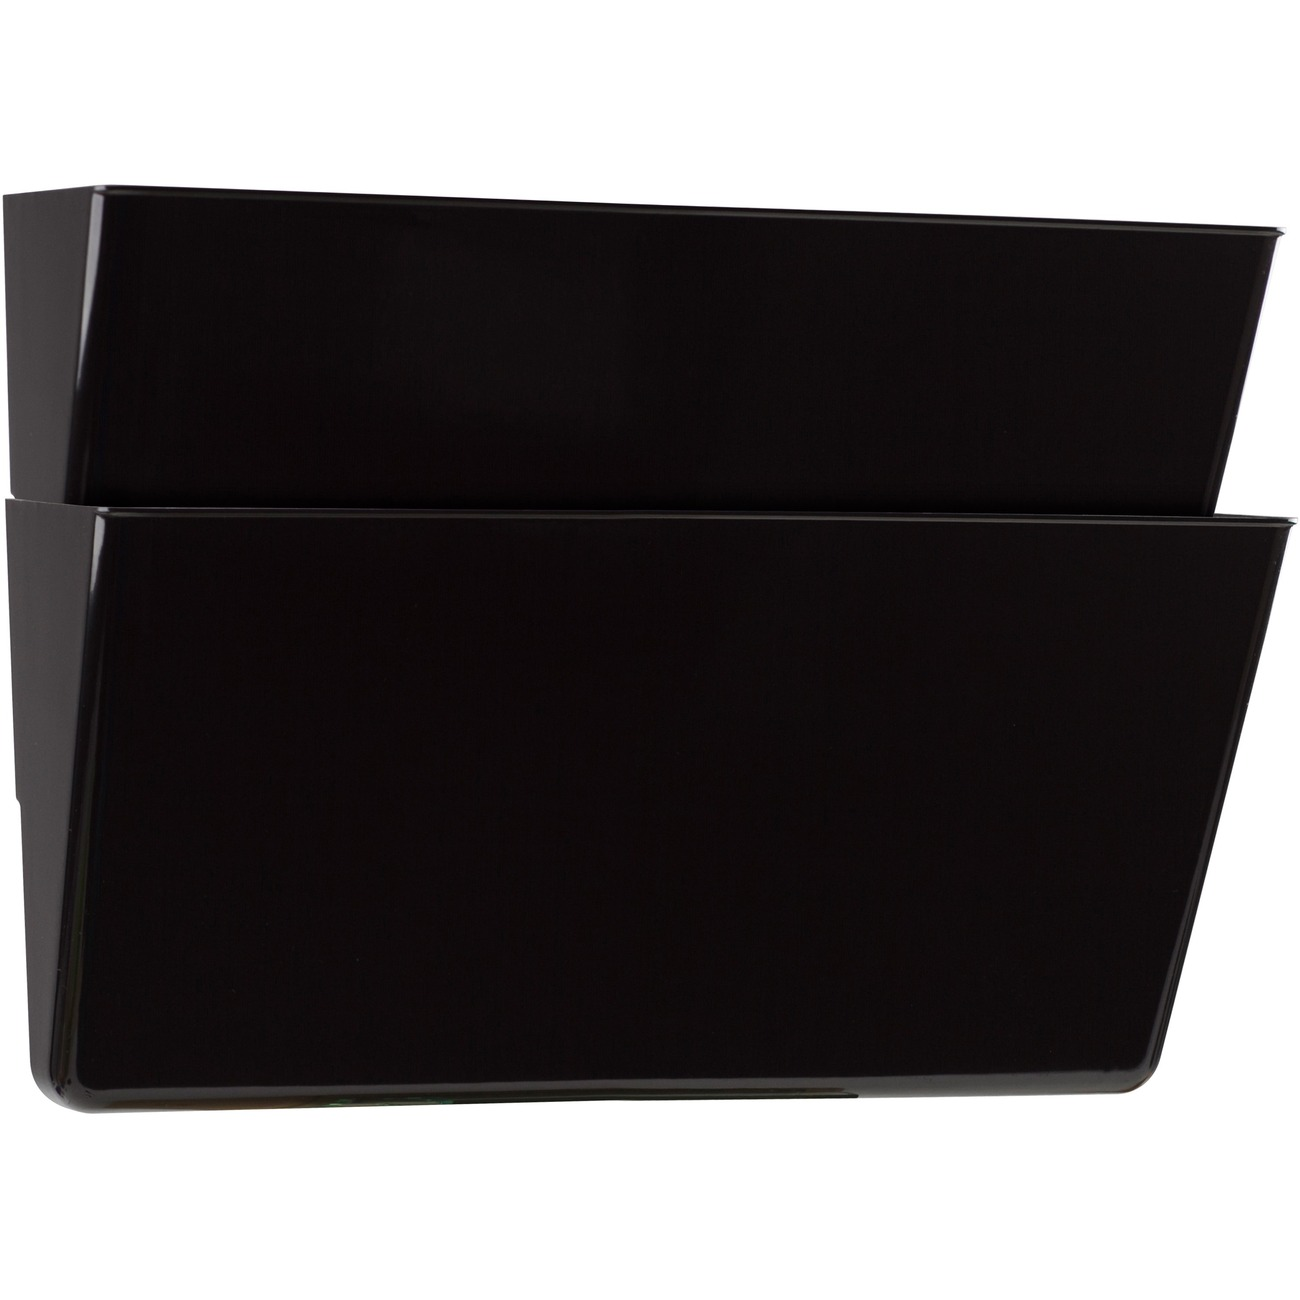 File Pocket Maximizes Your Storage Space By Allowing You To Keep Important  Files Conveniently On The Wall. Back Wall Ensures That No Paper, Big Or  Small, ...